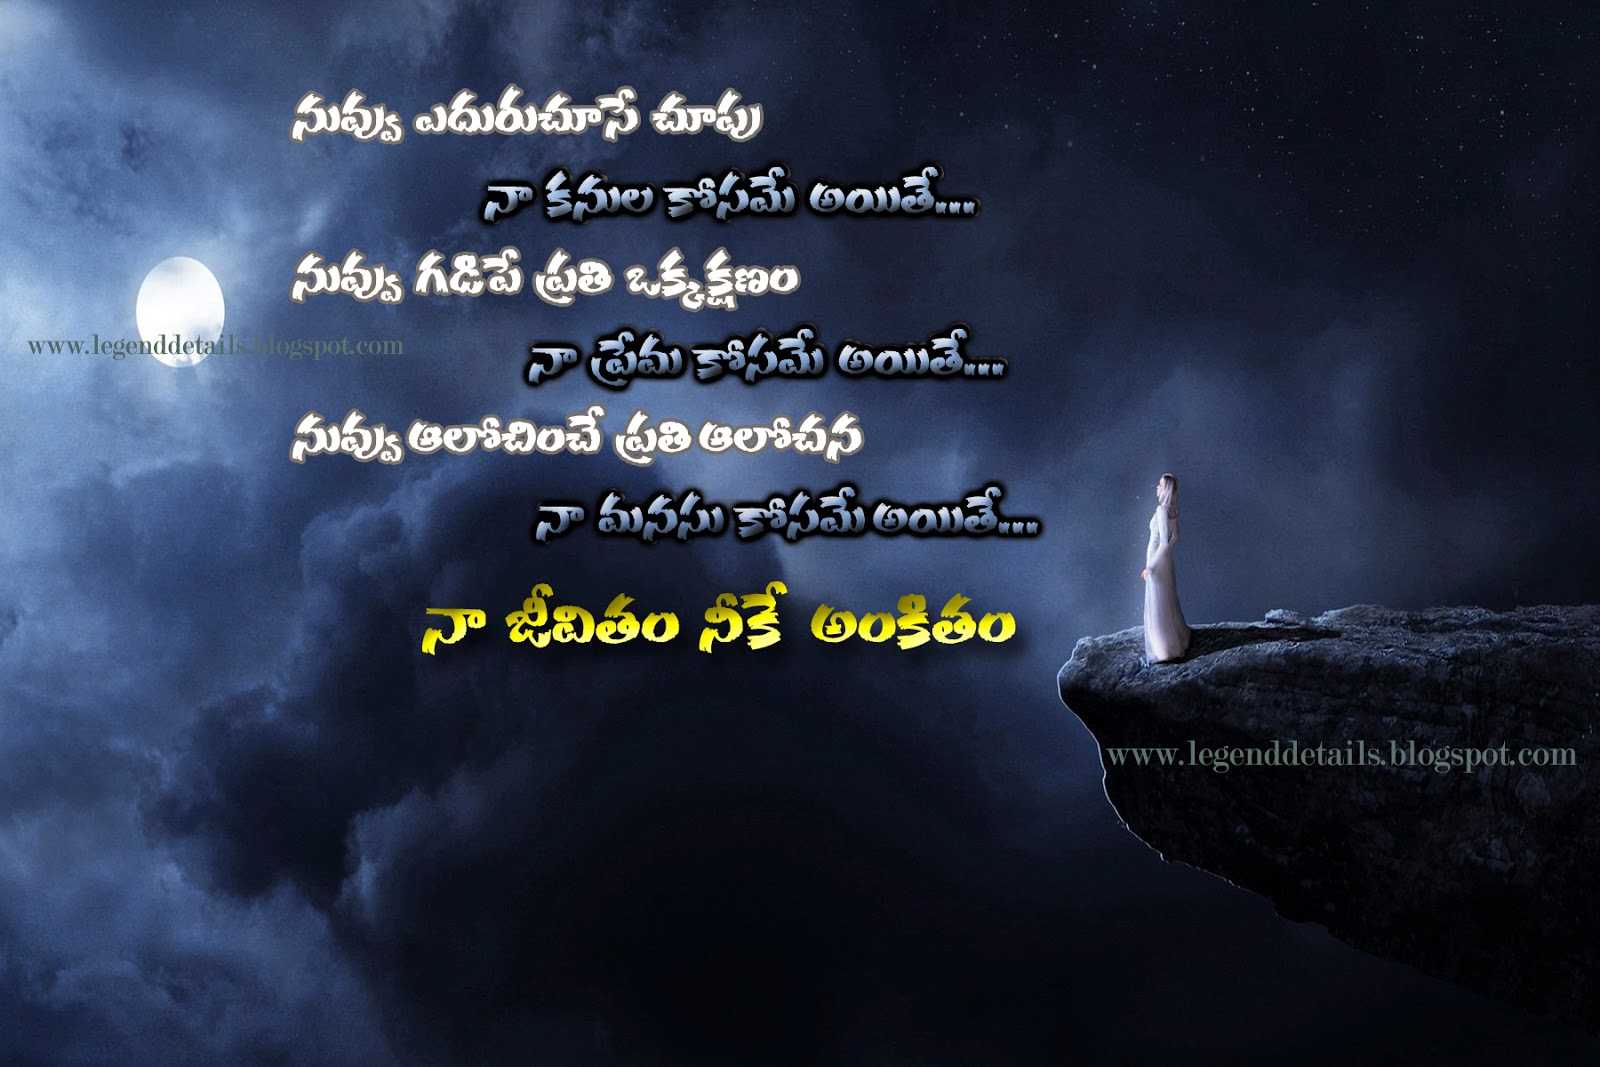 Sad Quotes About Love In Telugu : True Love Quotes in Telugu Legendary Quotes